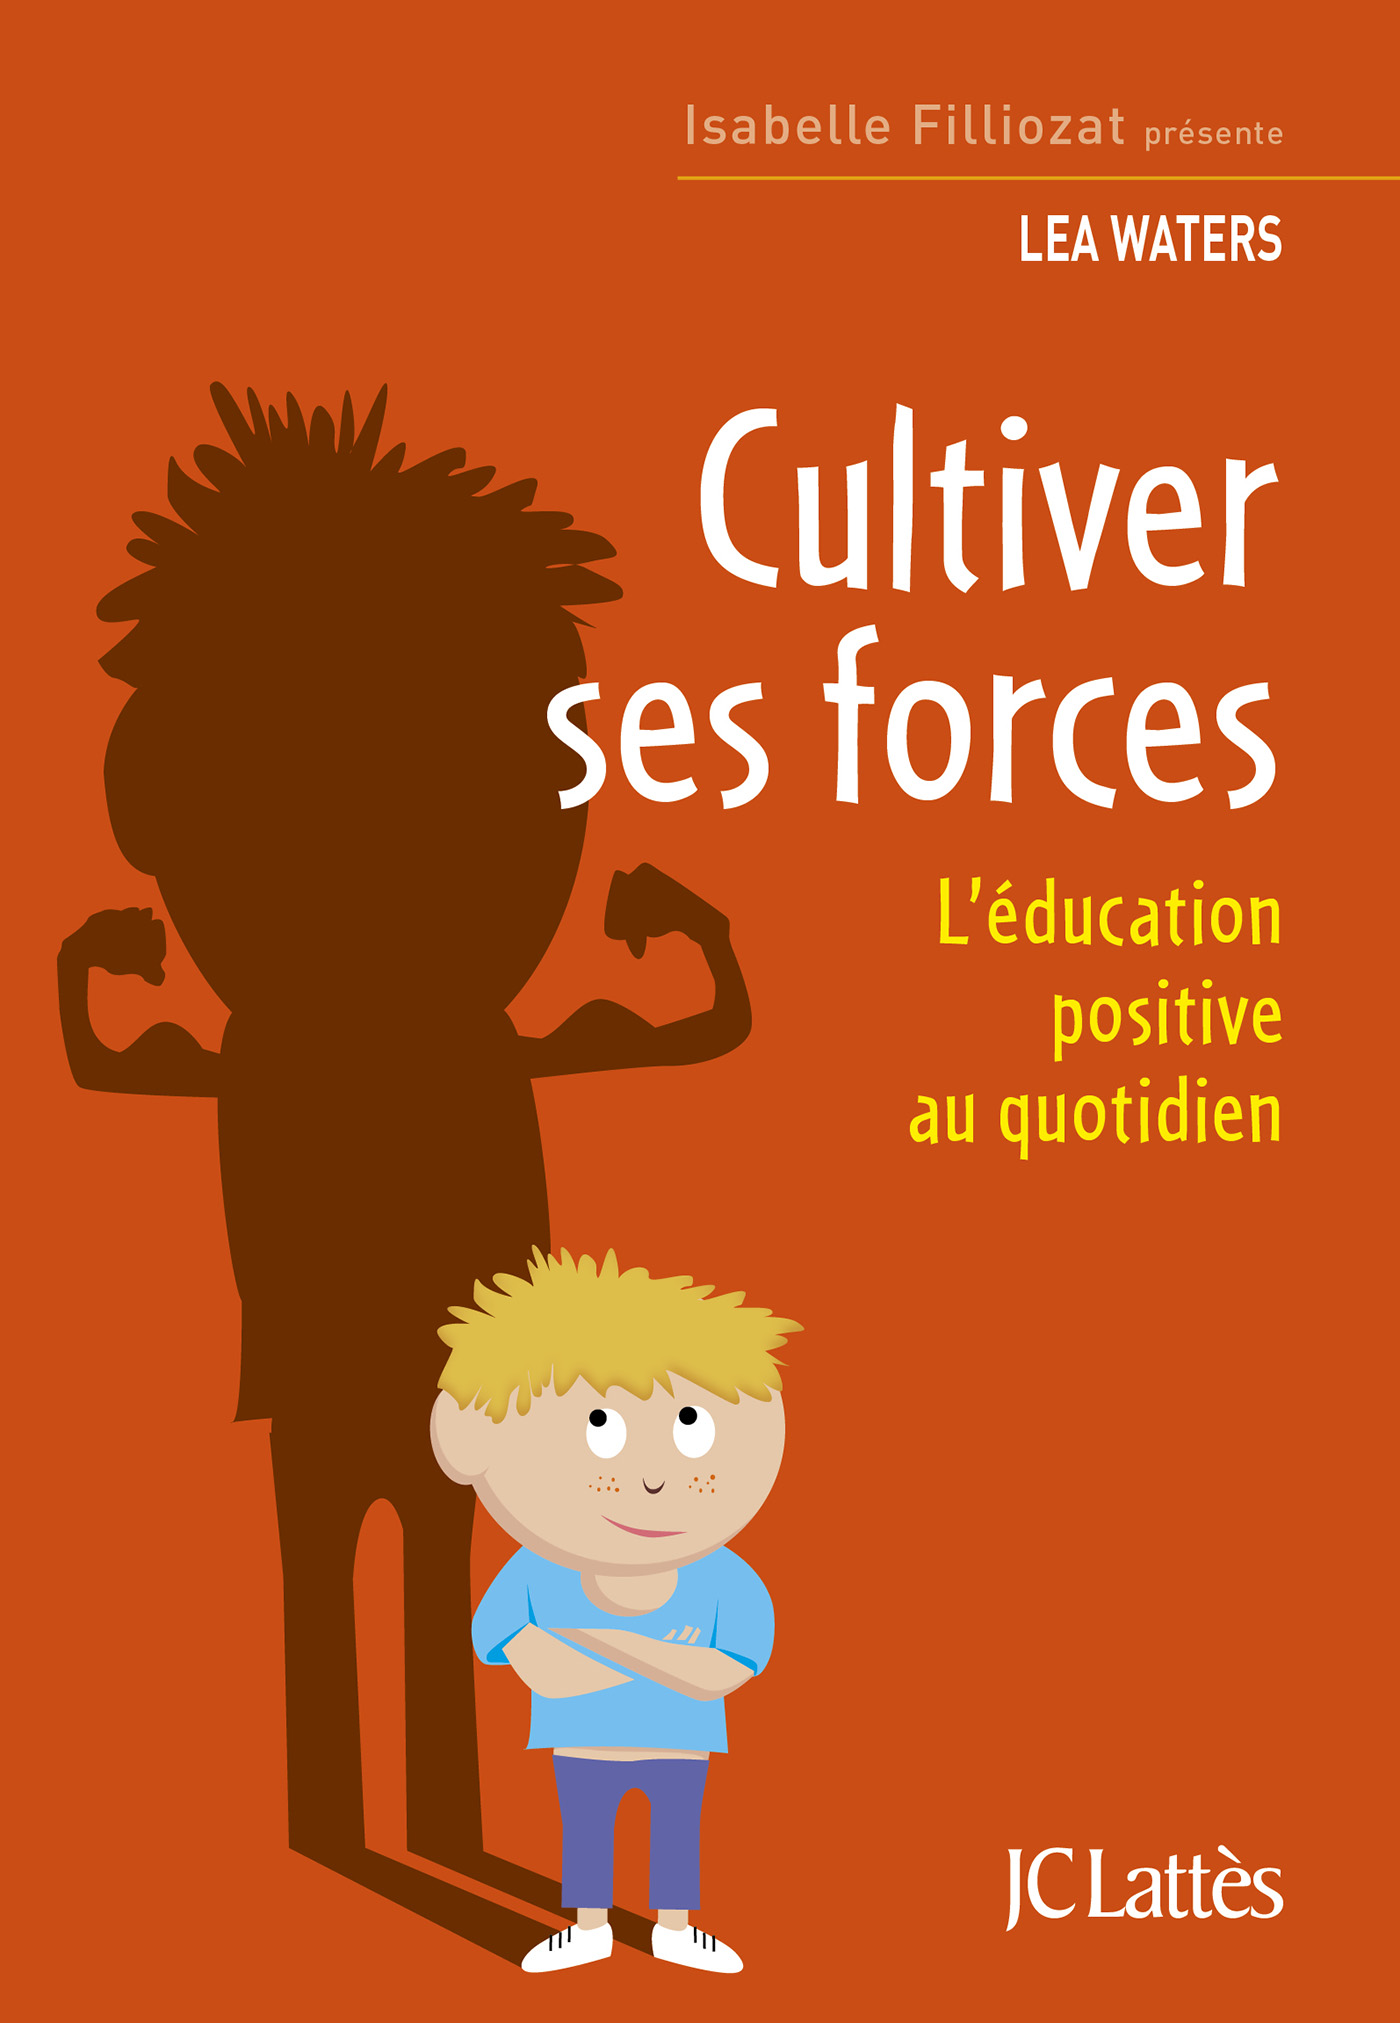 Cultiver ses forces Lea Waters.jpg